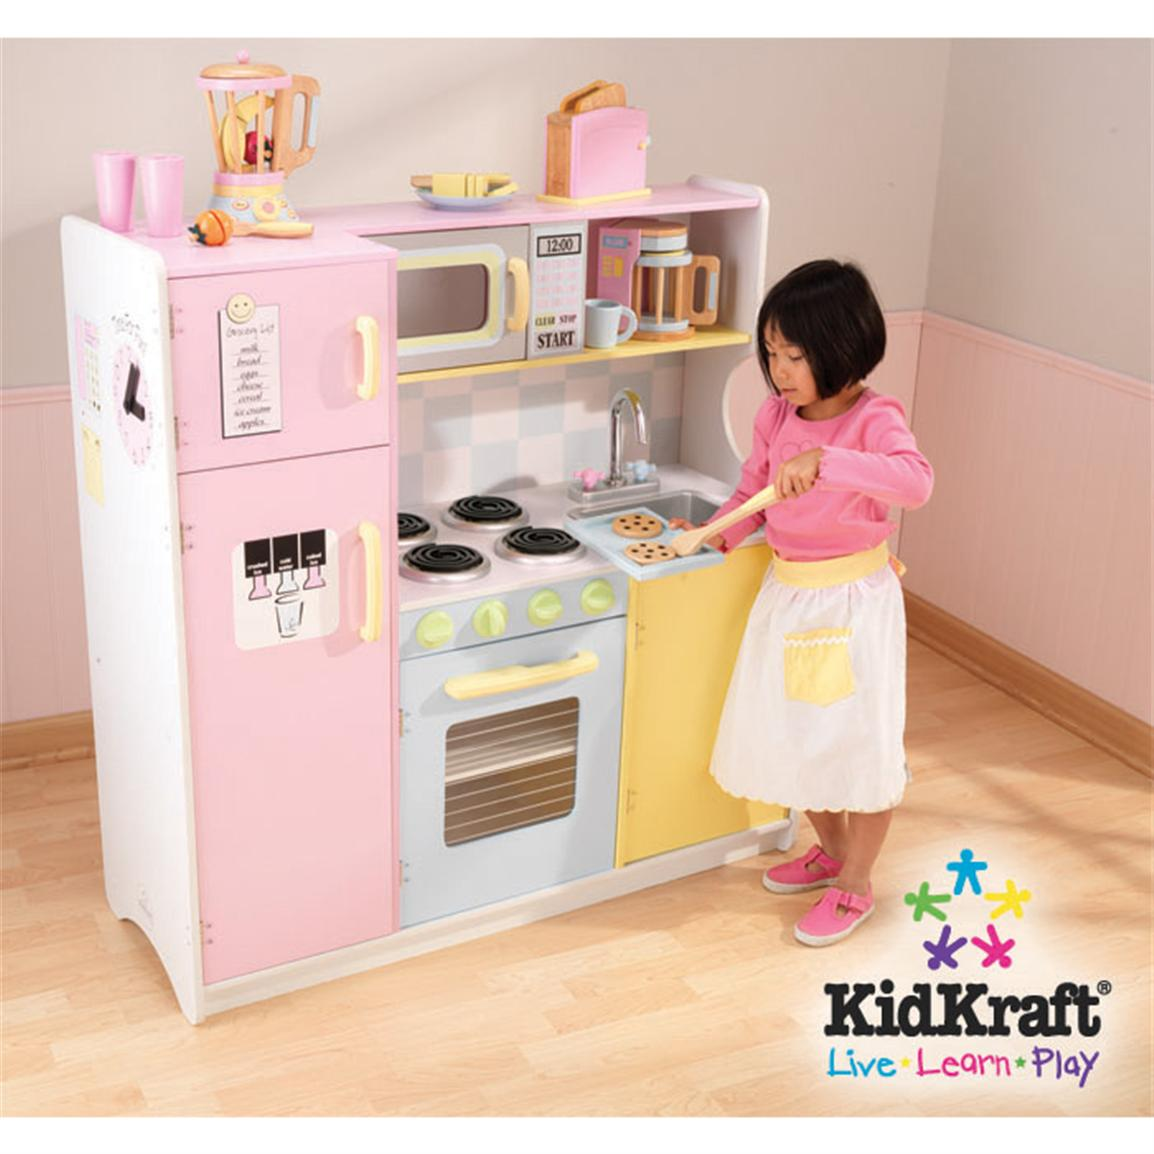 Cuisinette Pas Cher Kidkraft Pastel Play Kitchen Set - 146111, Toys At